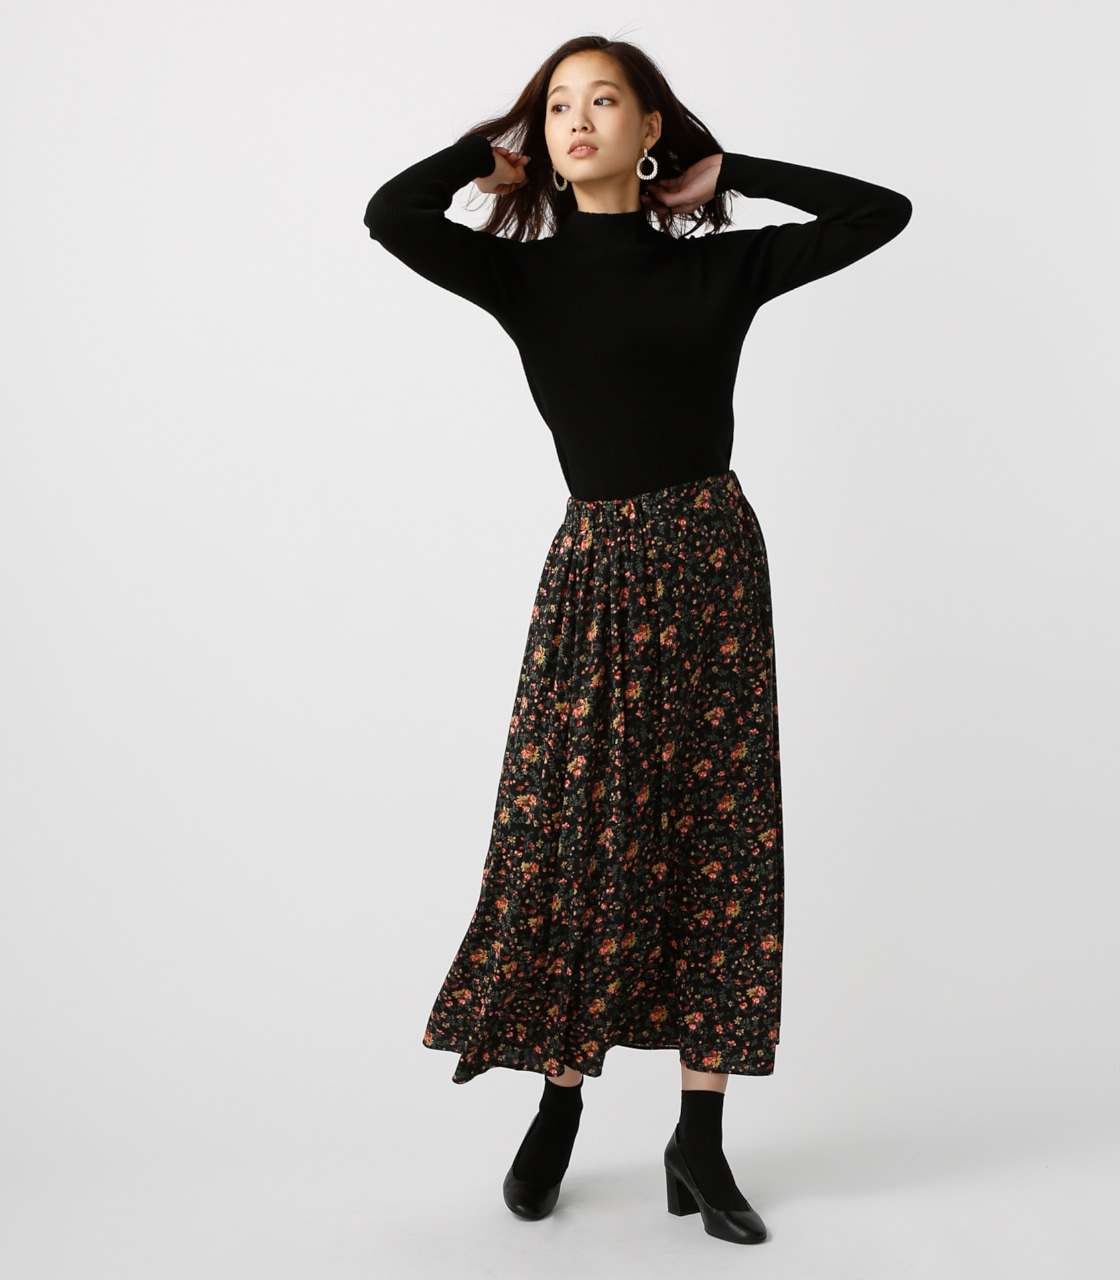 【AZUL BY MOUSSY】ローズブーケ柄ロングスカート 詳細画像 柄BLK 4